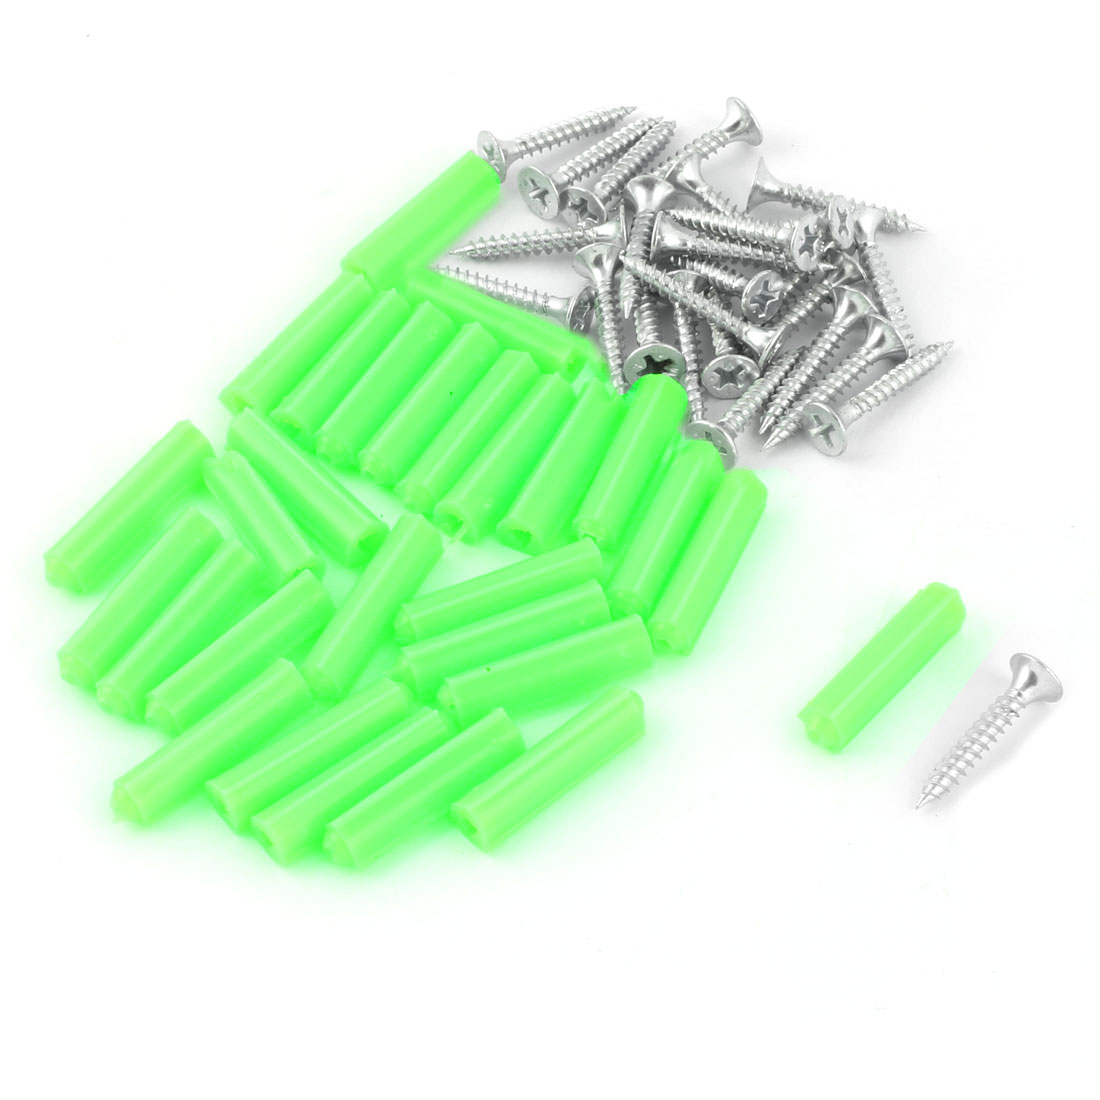 Plastic Expansion Anchor Wall Screws Silver Tone 26 Pcs